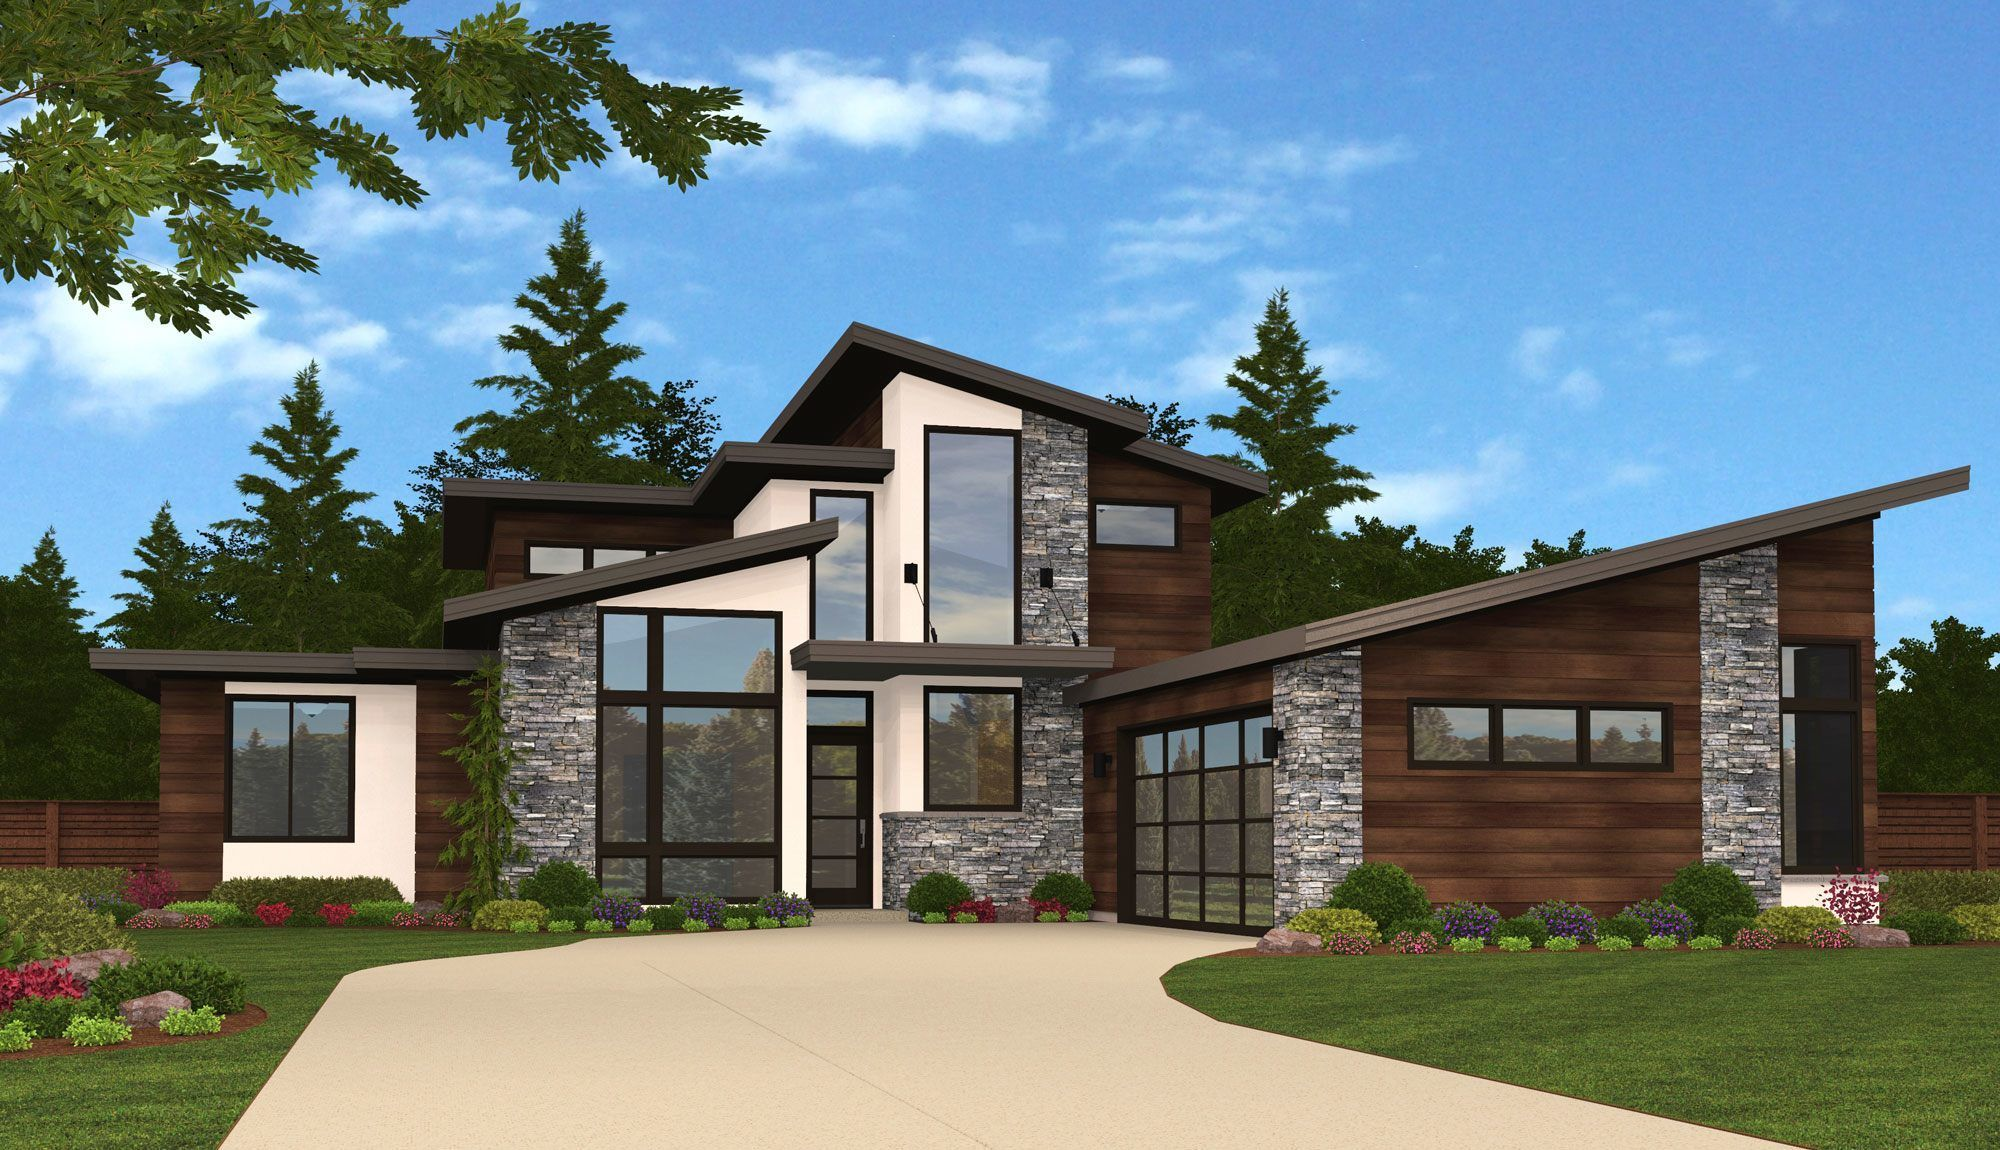 A modern l shaped plan full of happiness and light the volume of windows all around the great room insure light in the core of this home at all daylight